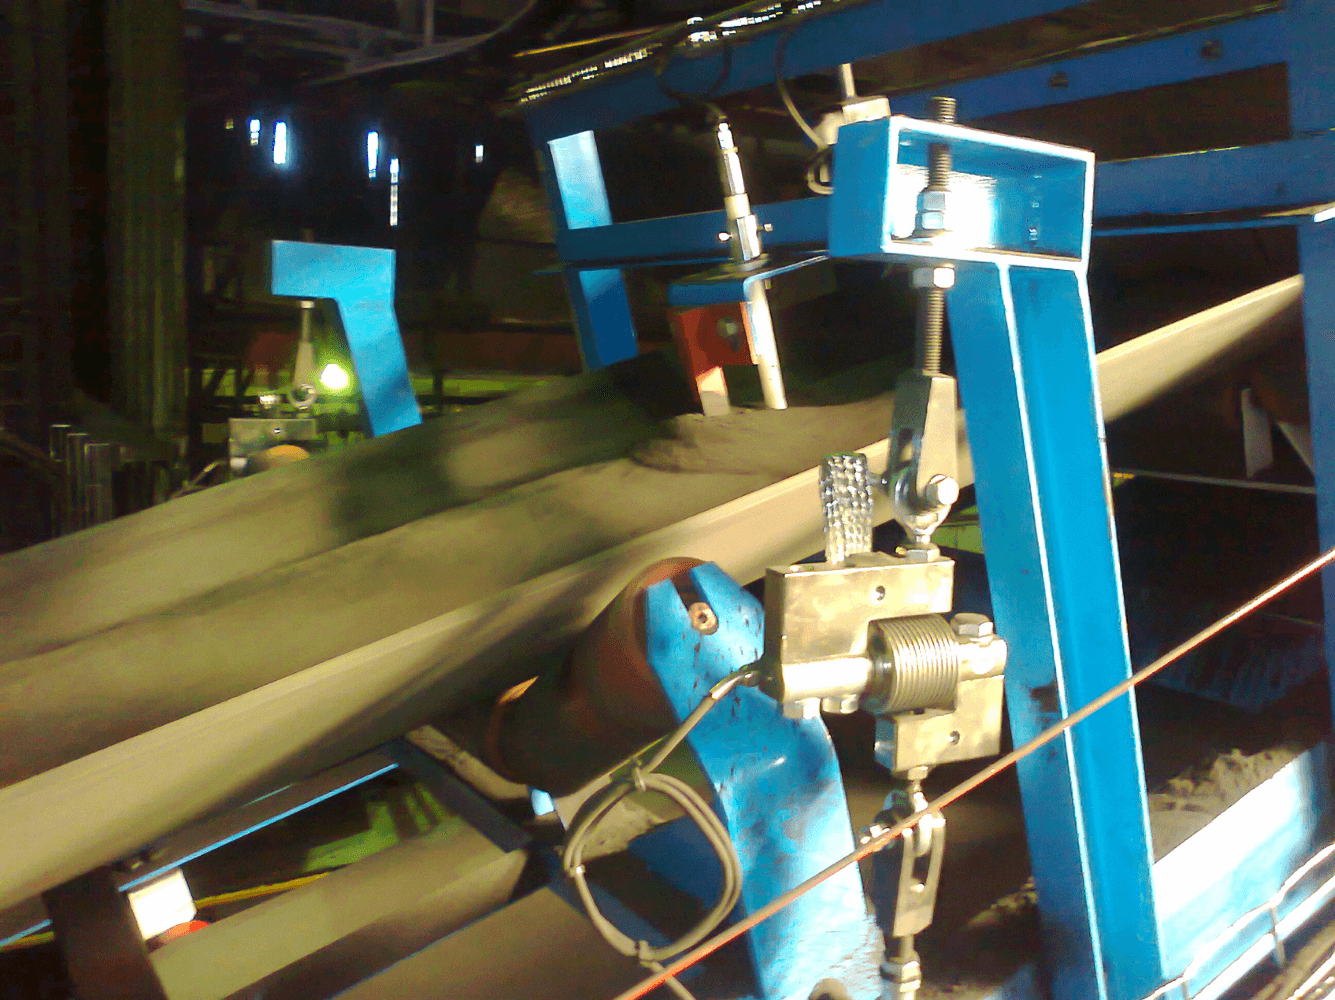 Weighing system